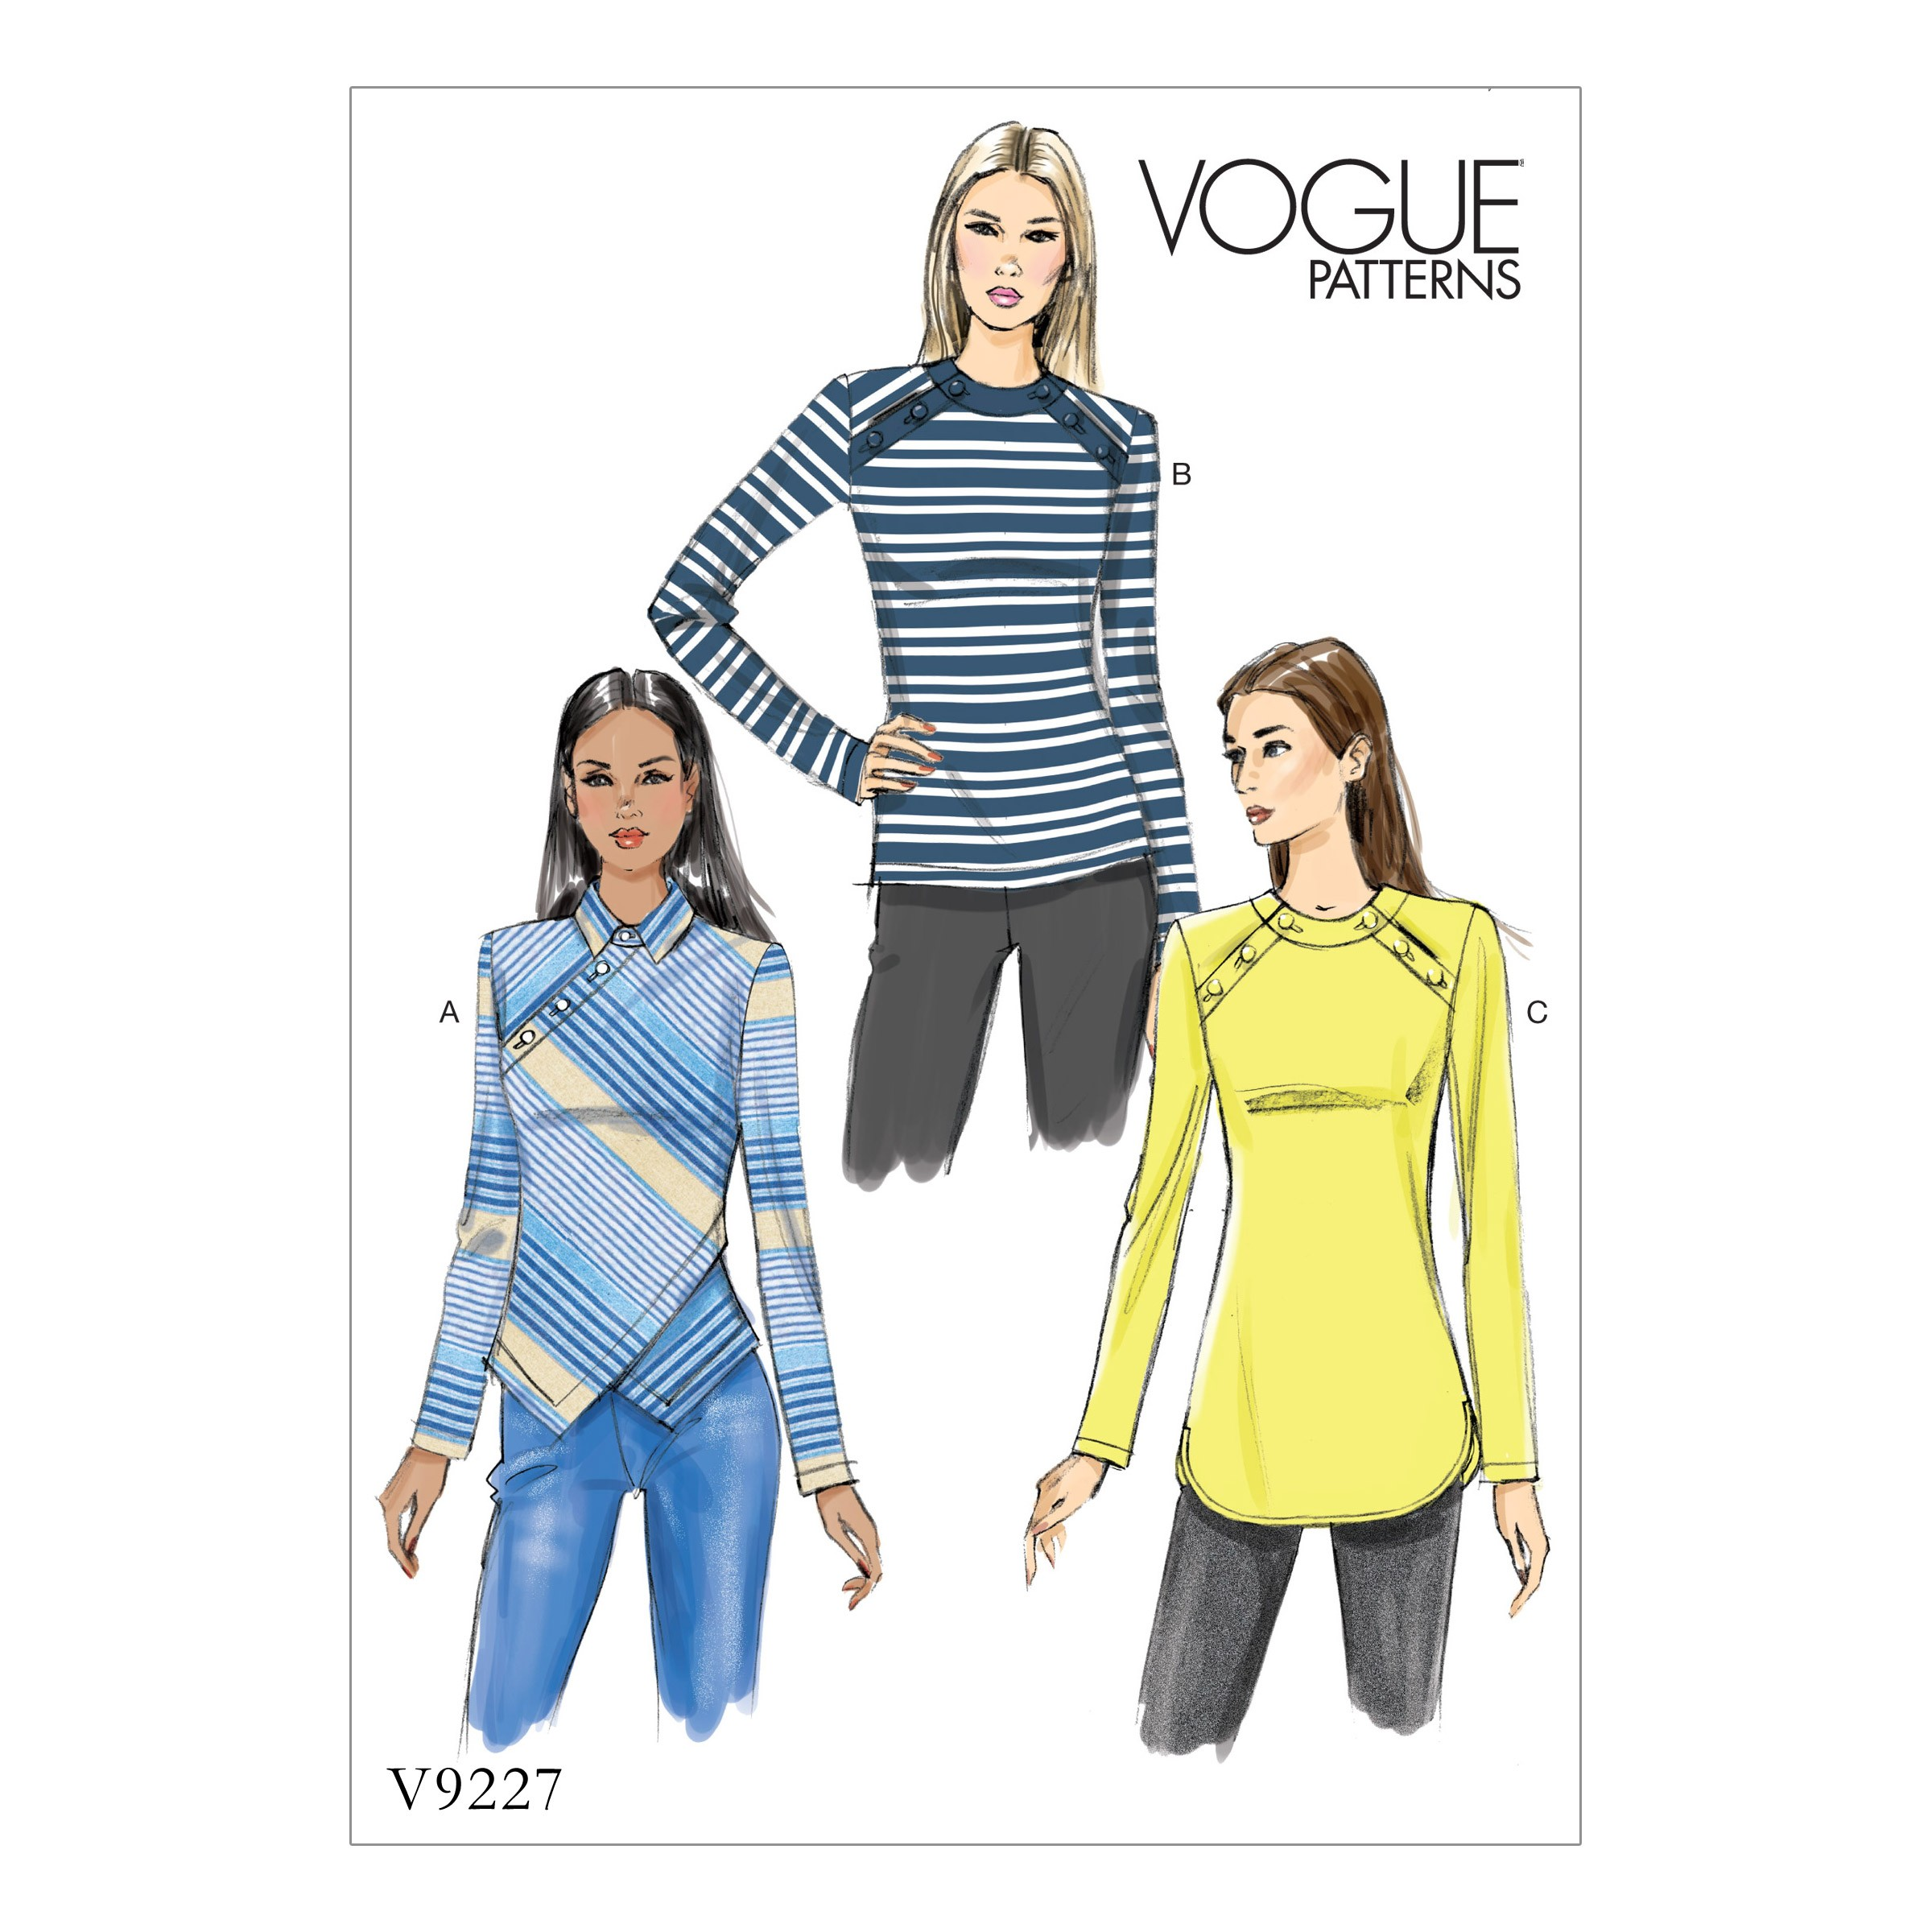 Vogue Sewing Pattern V9227 Women's Misses' Button Detailed Top